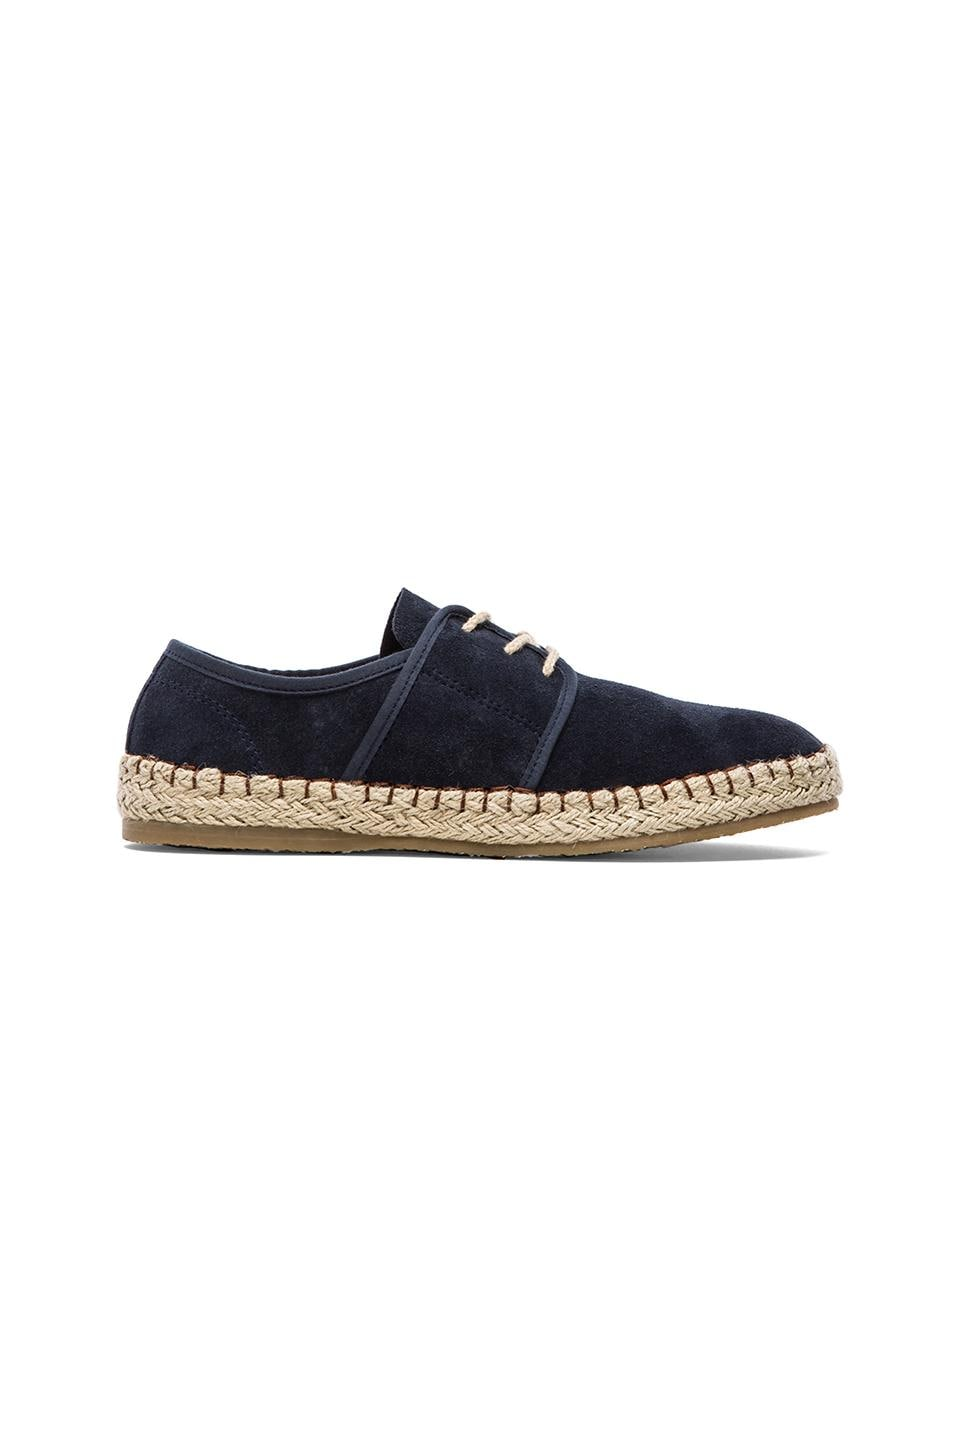 SeaVees 07/60 Sorrento Sand Shoe in Navy Suede